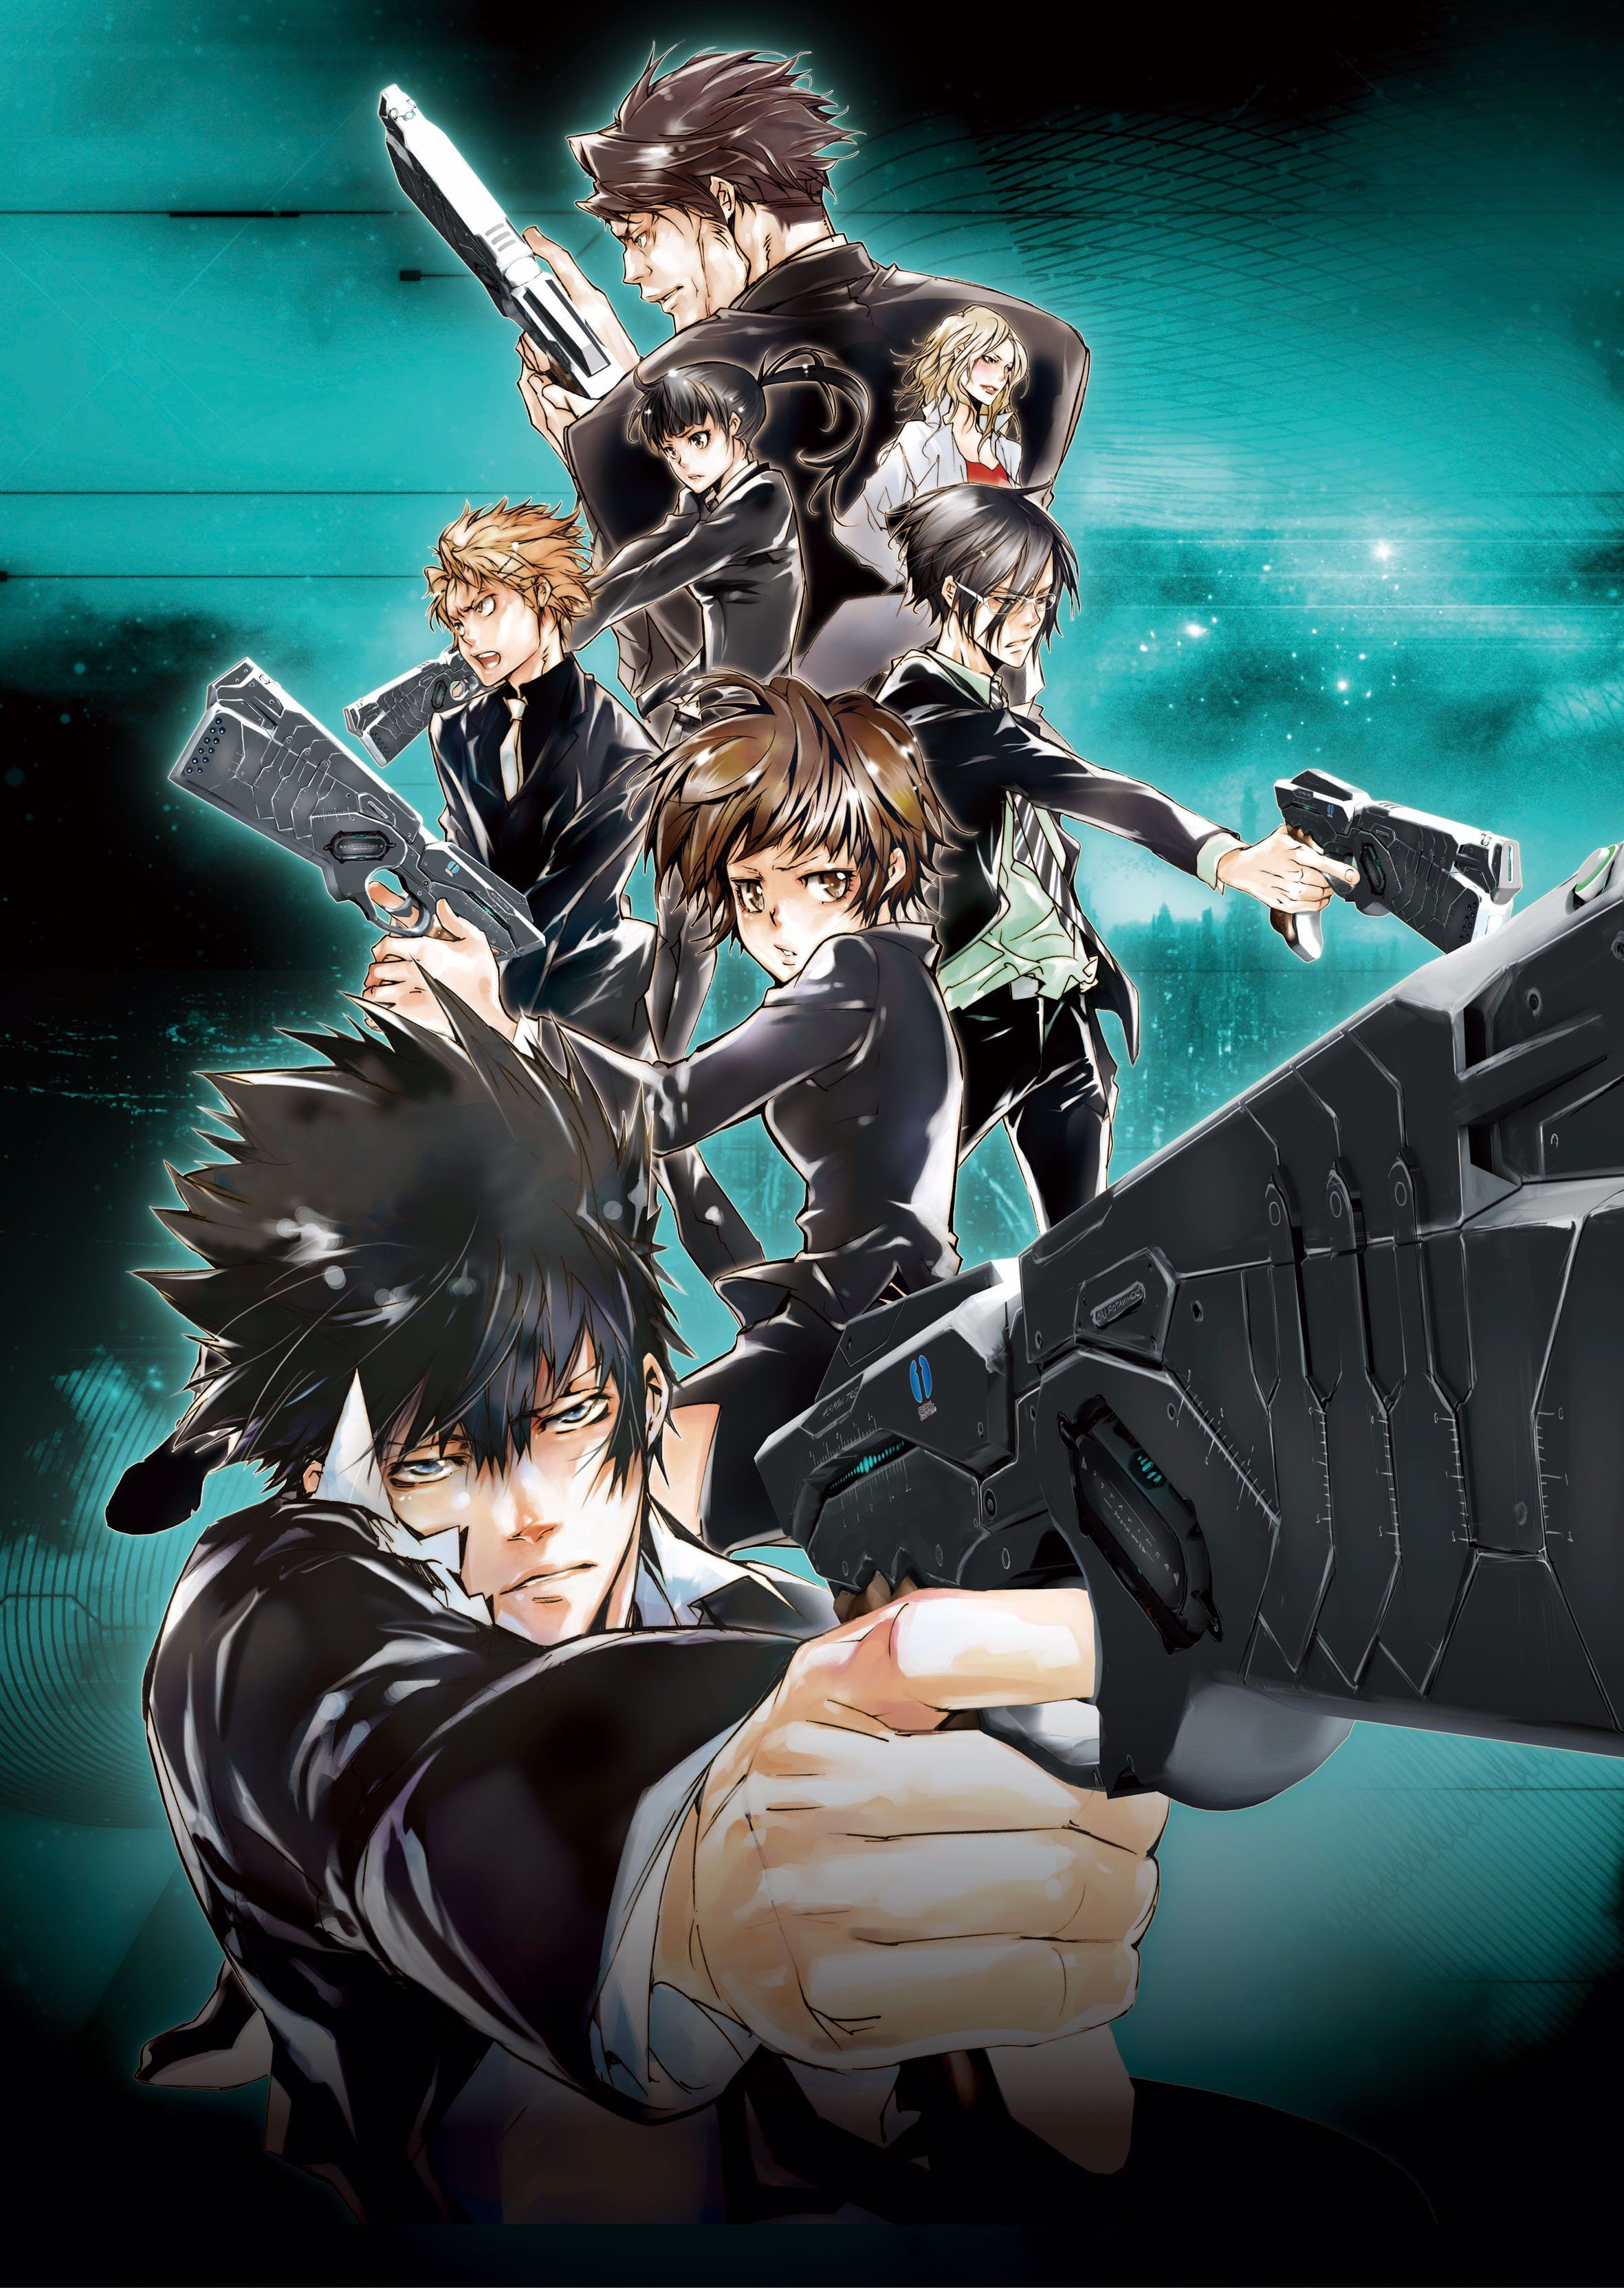 Best Anime on Hulu Right Now in 2020 Psycho pass, Anime